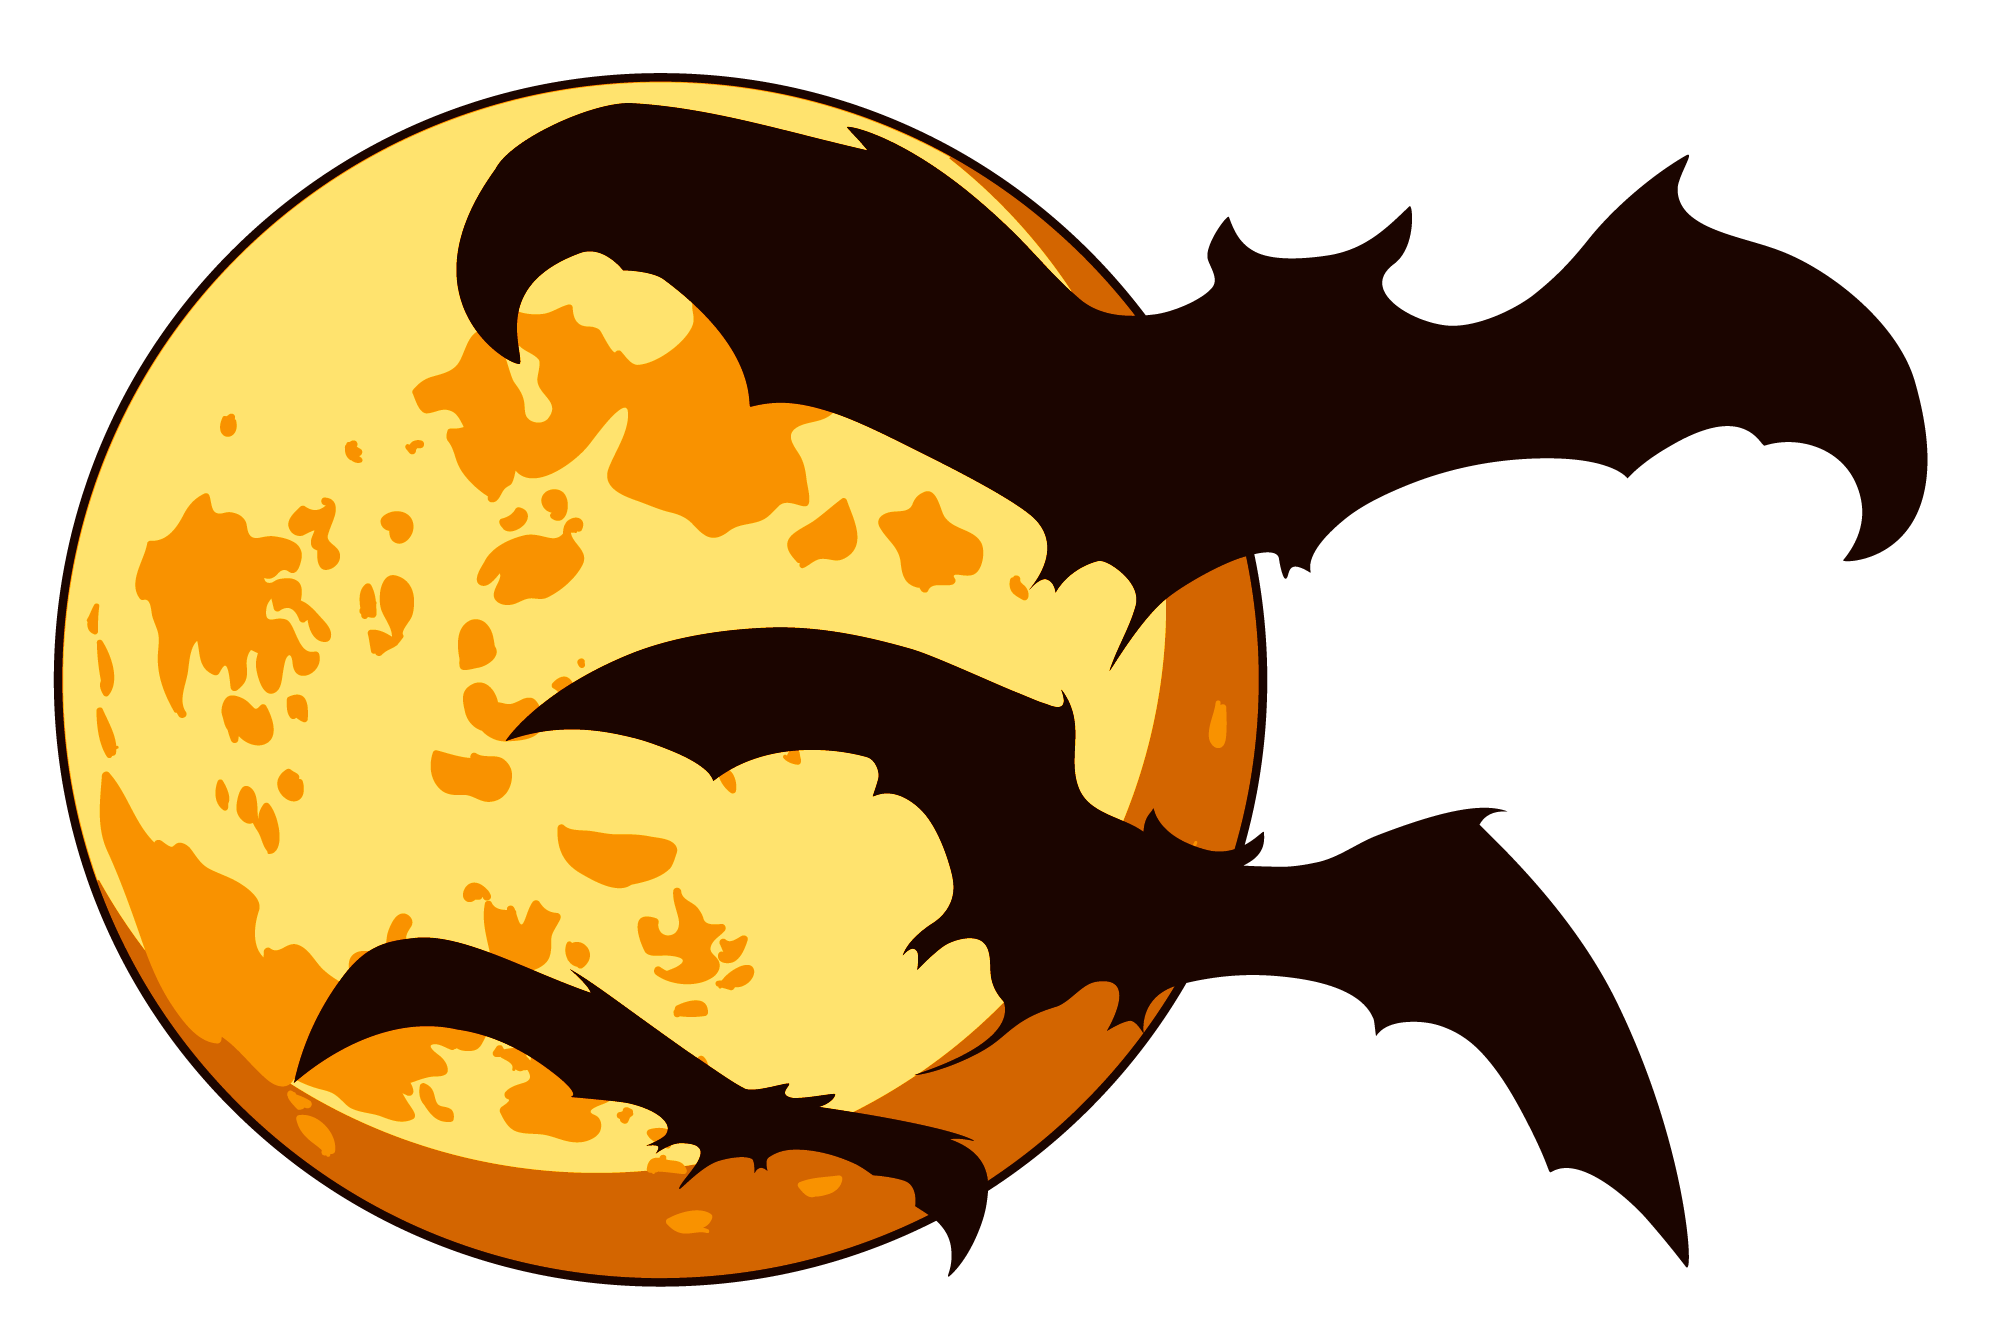 moon halloween high quality png